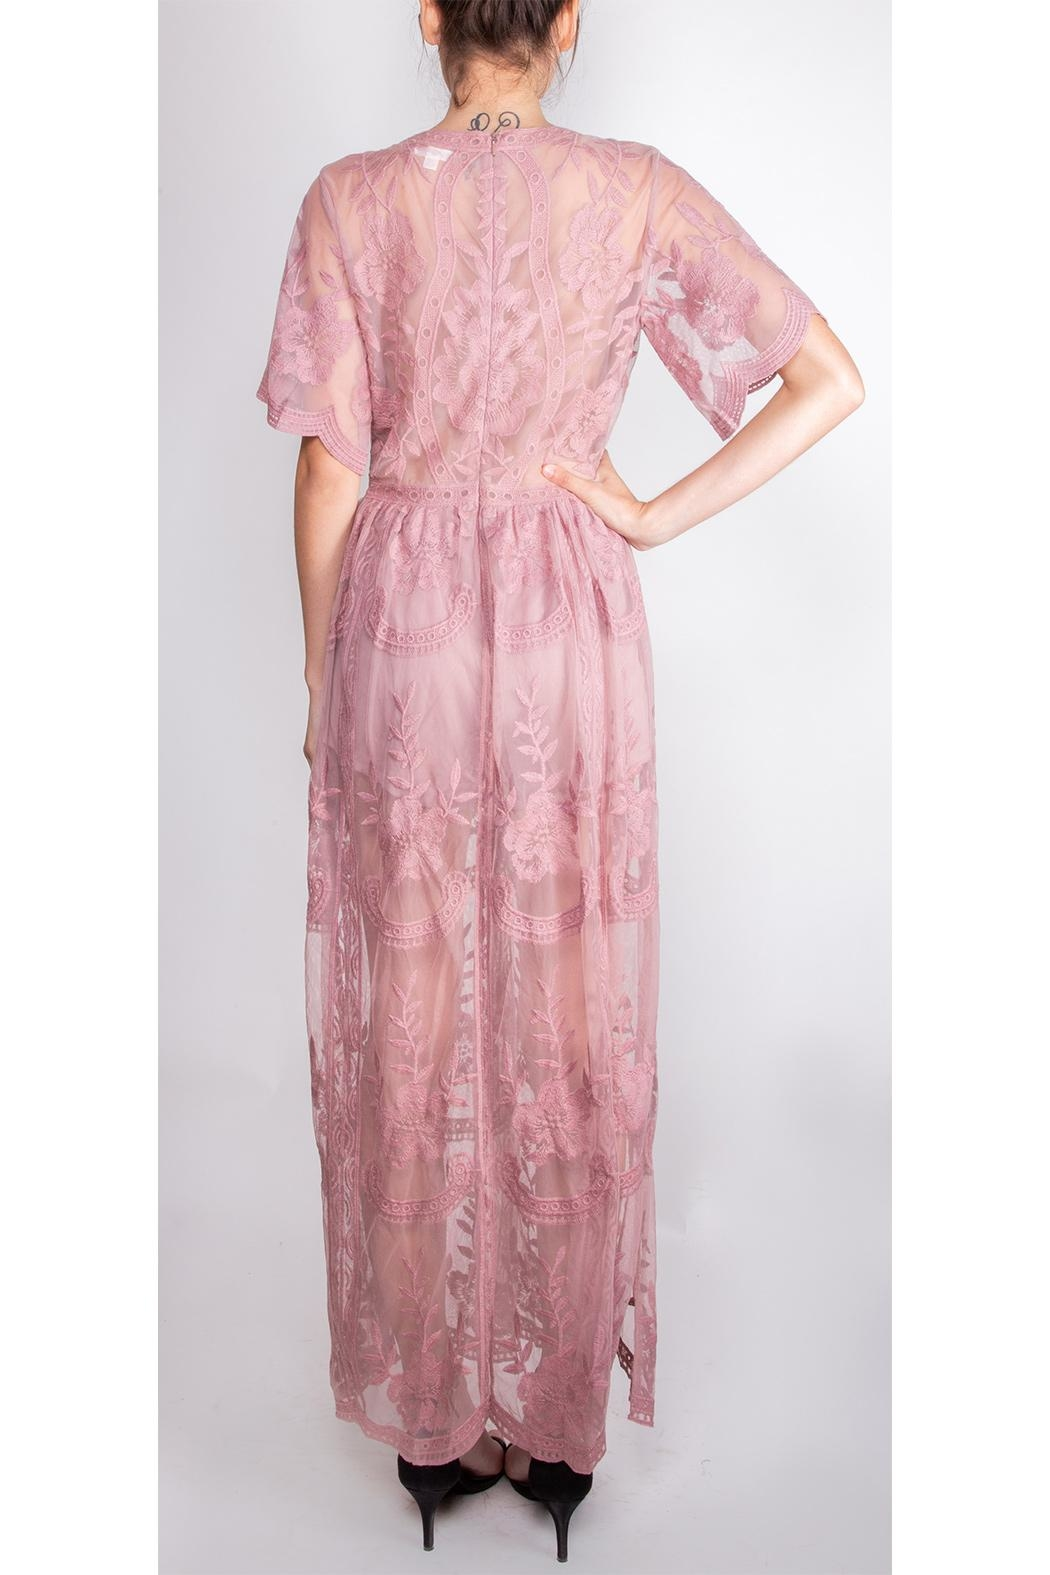 Wild Honey Butterfly Lace Maxi-Dress - Back Cropped Image